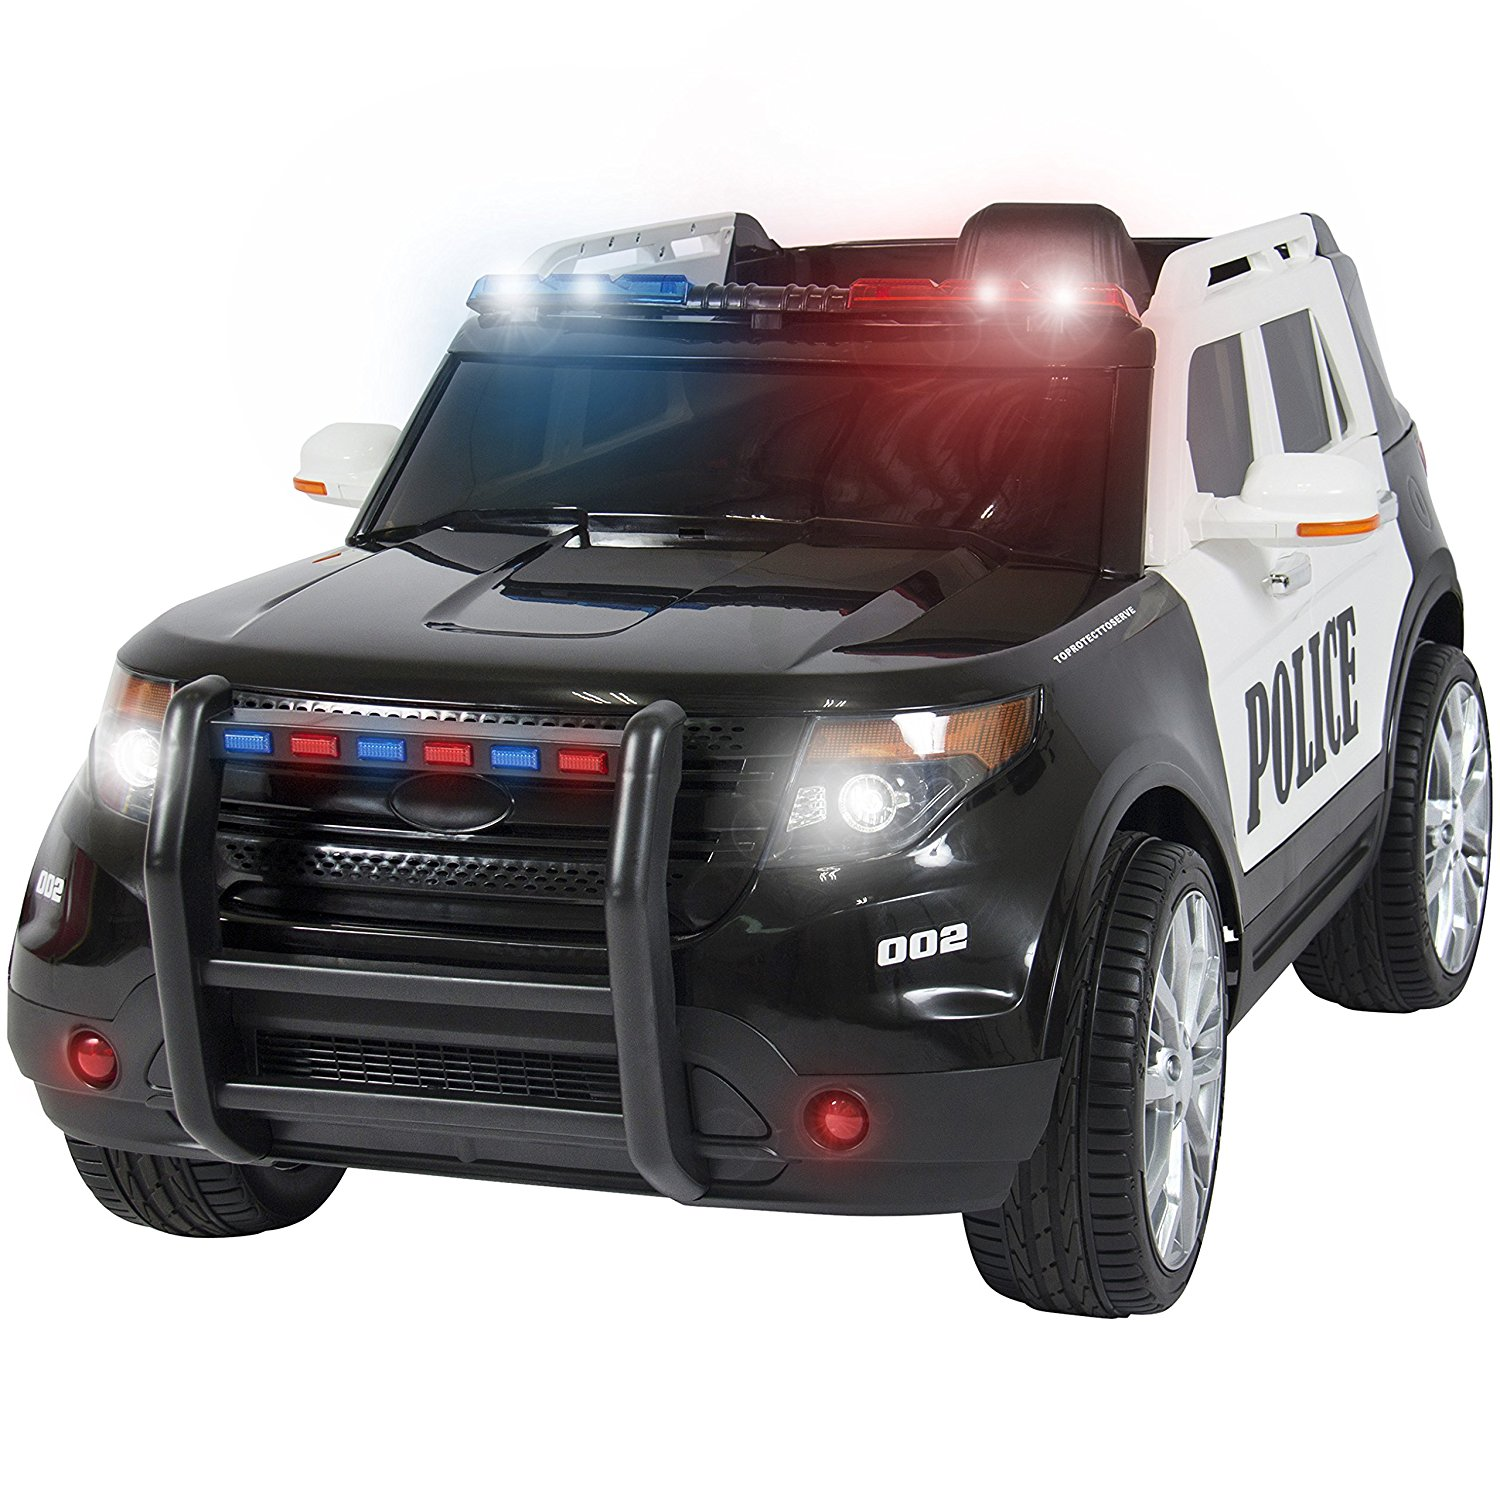 best choice products 12v kids police rc remote ride on suv car w parent control 2 speeds lights aux sirens black toys games